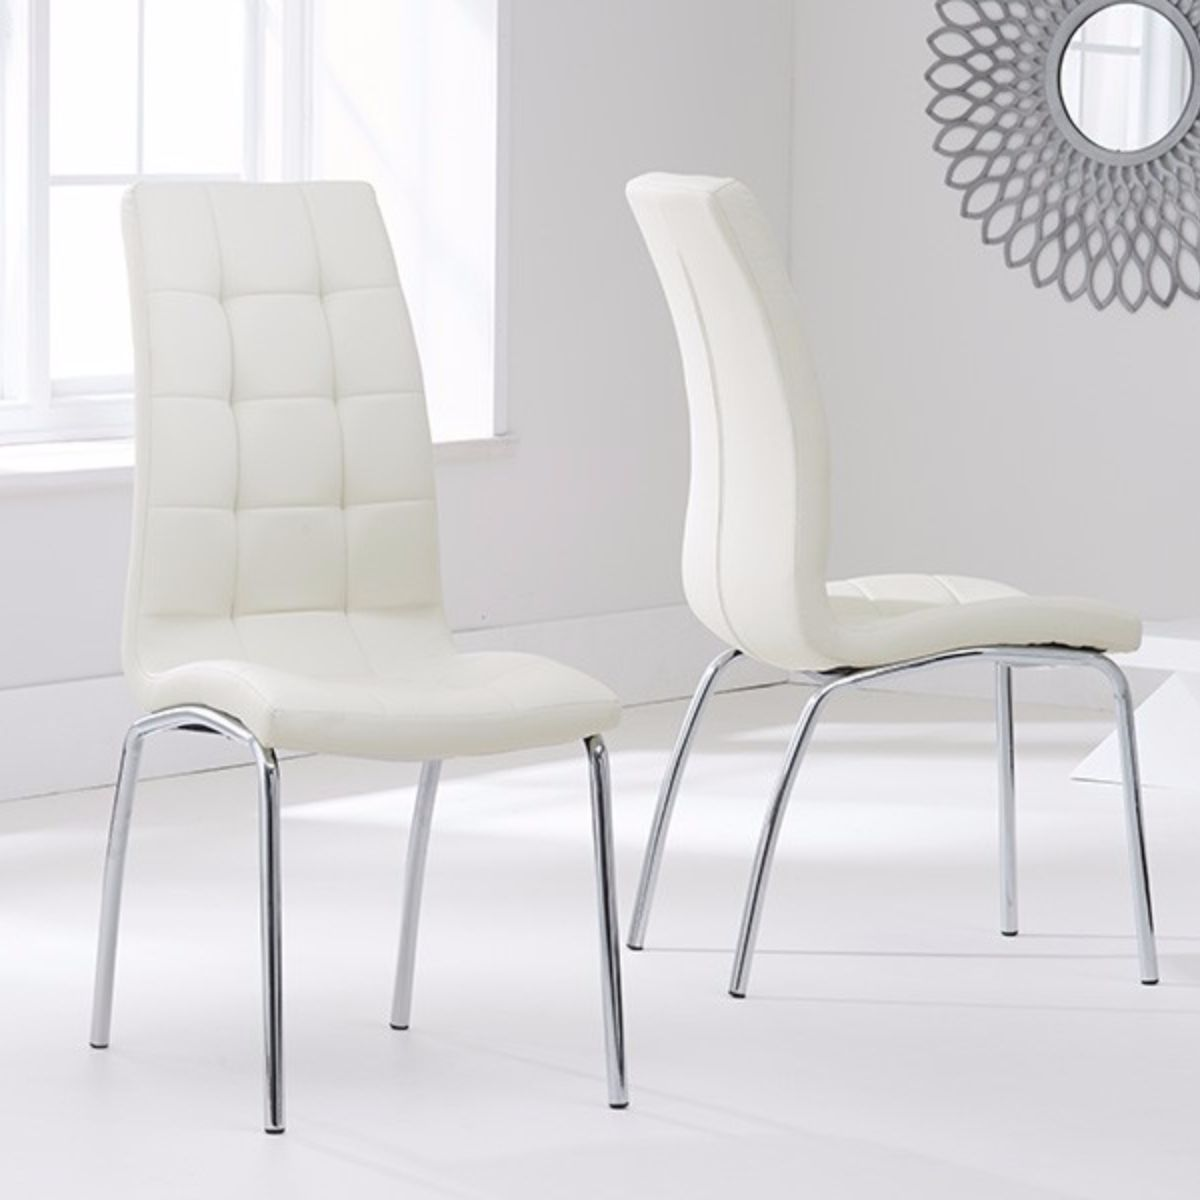 Munich Glass Dining Table with 4 Chairs (Chair Colour: Cream)